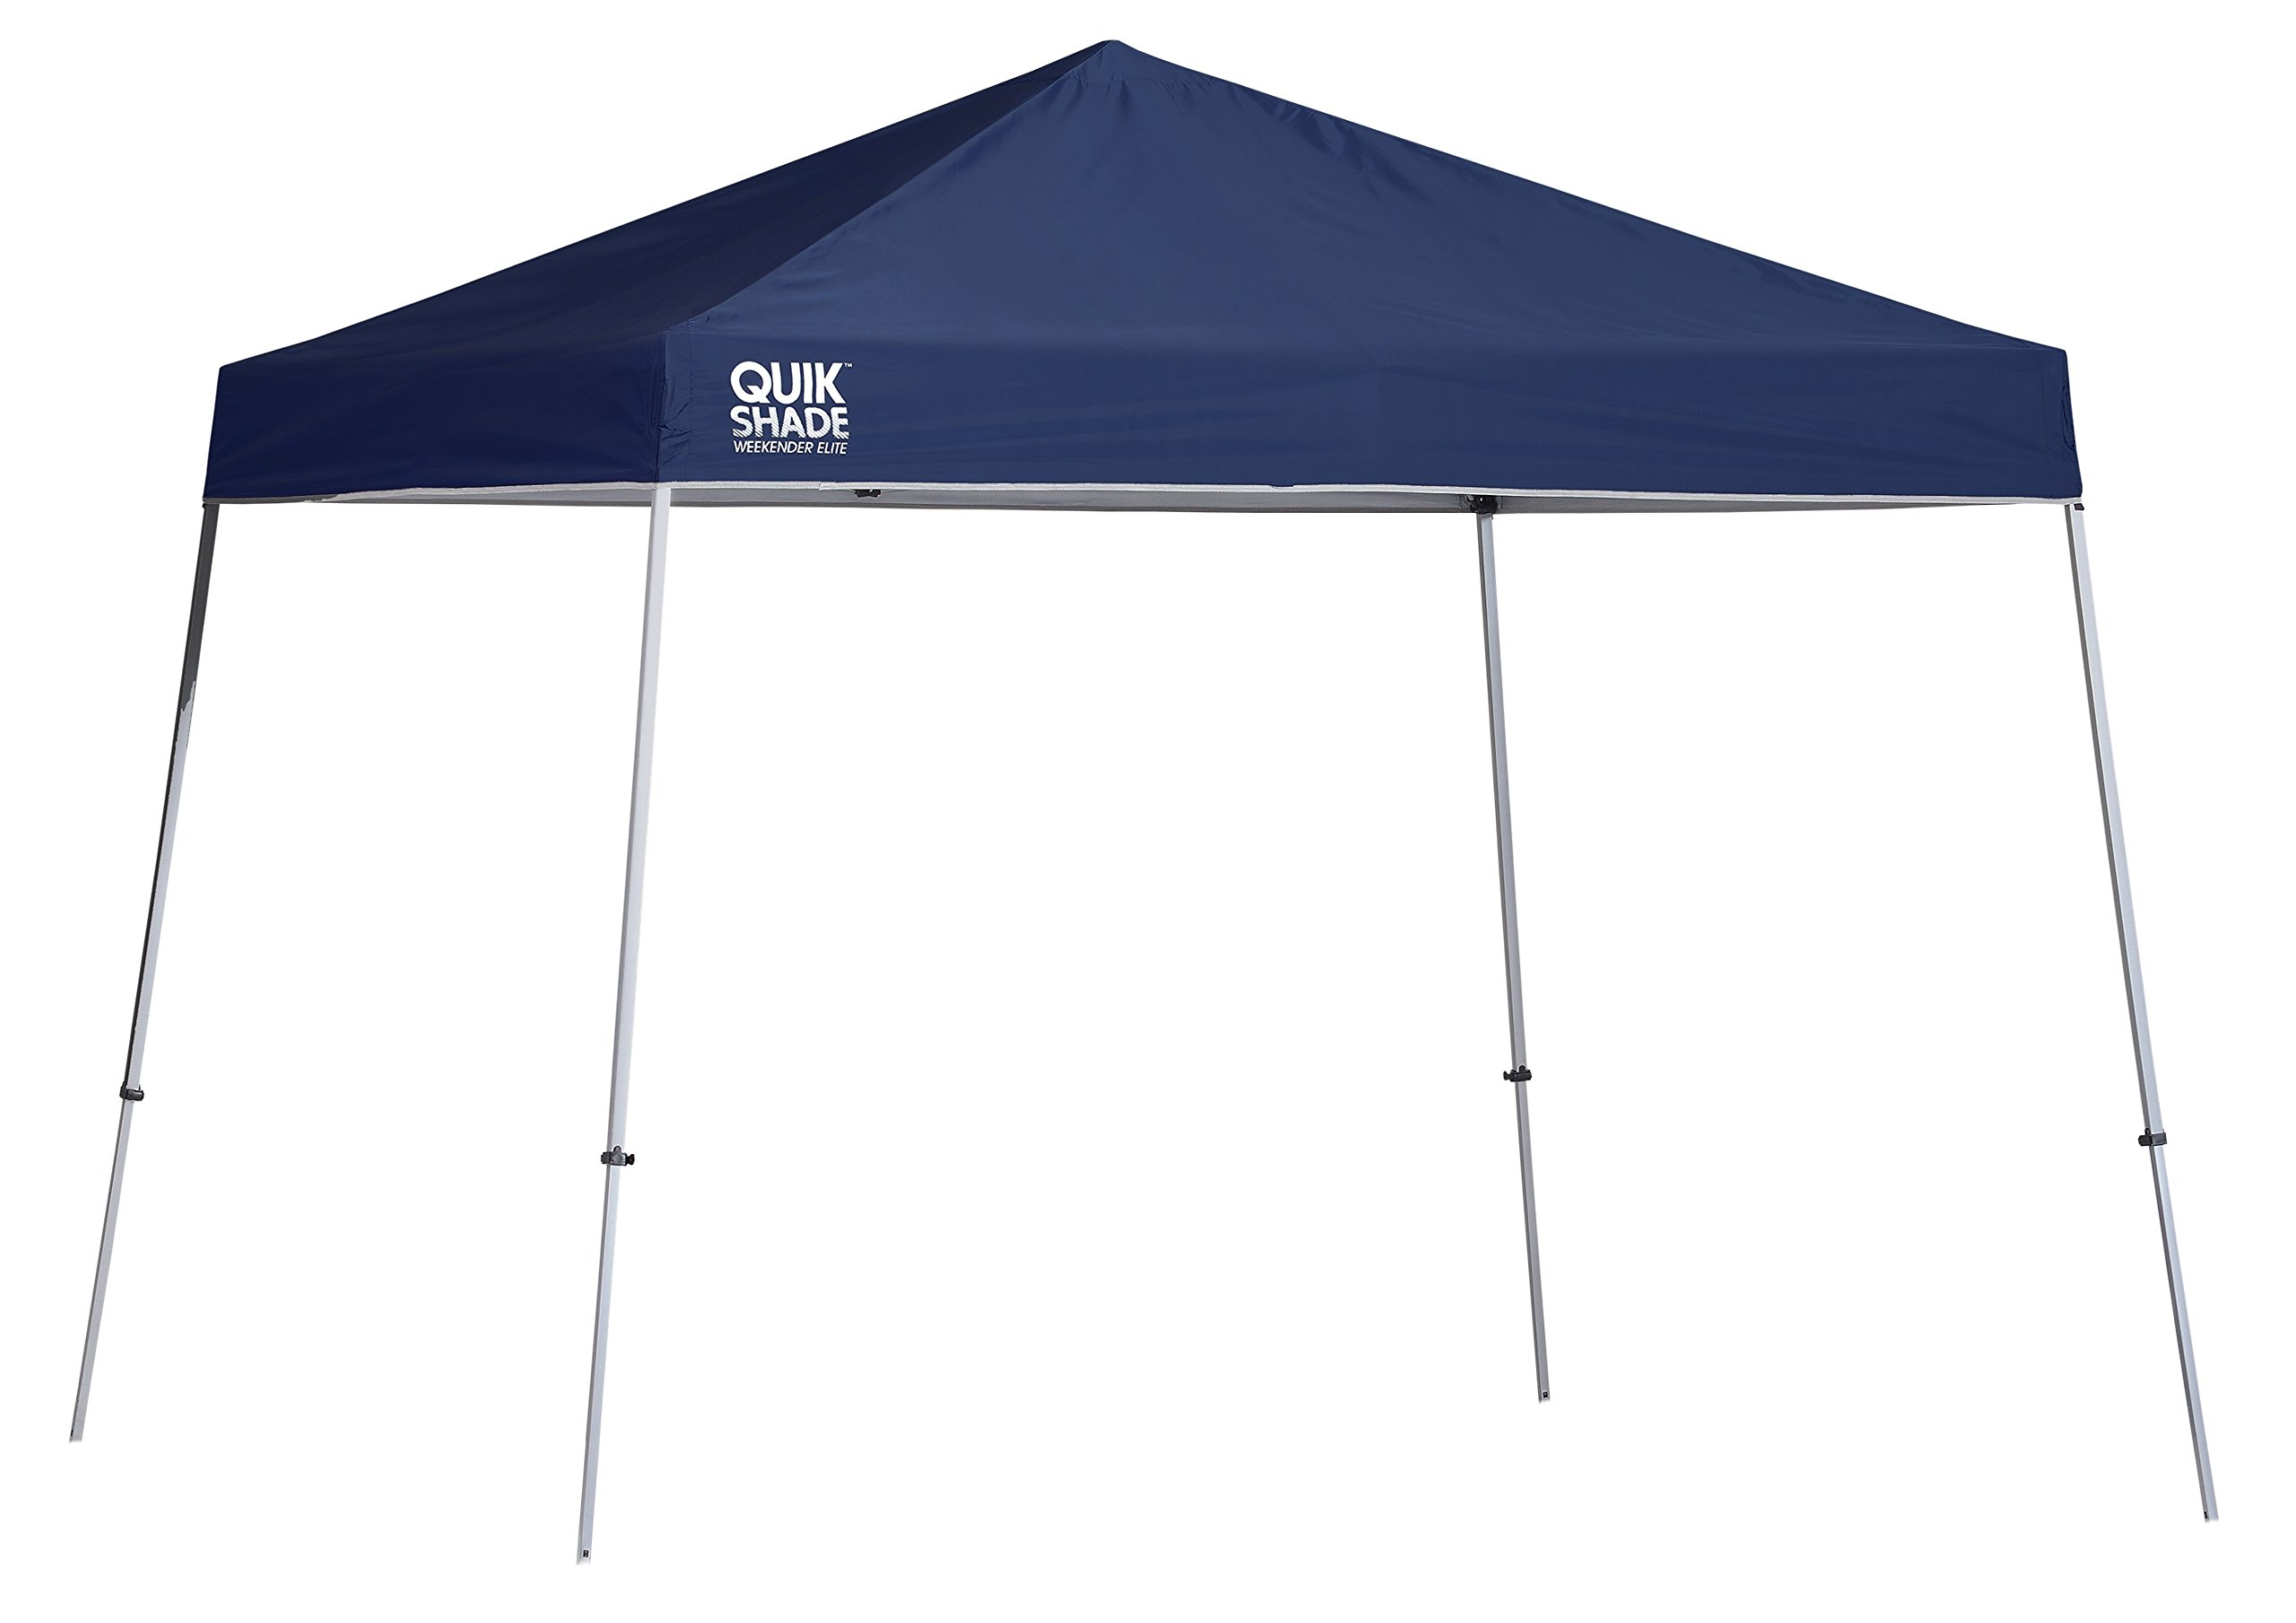 Quik Shade 10' x 10' Weekender Elite Instant Canopy, Slant Leg Outdoor Tent, 81 Square Feet of Shade for 6-8 People - Green by Quik Shade